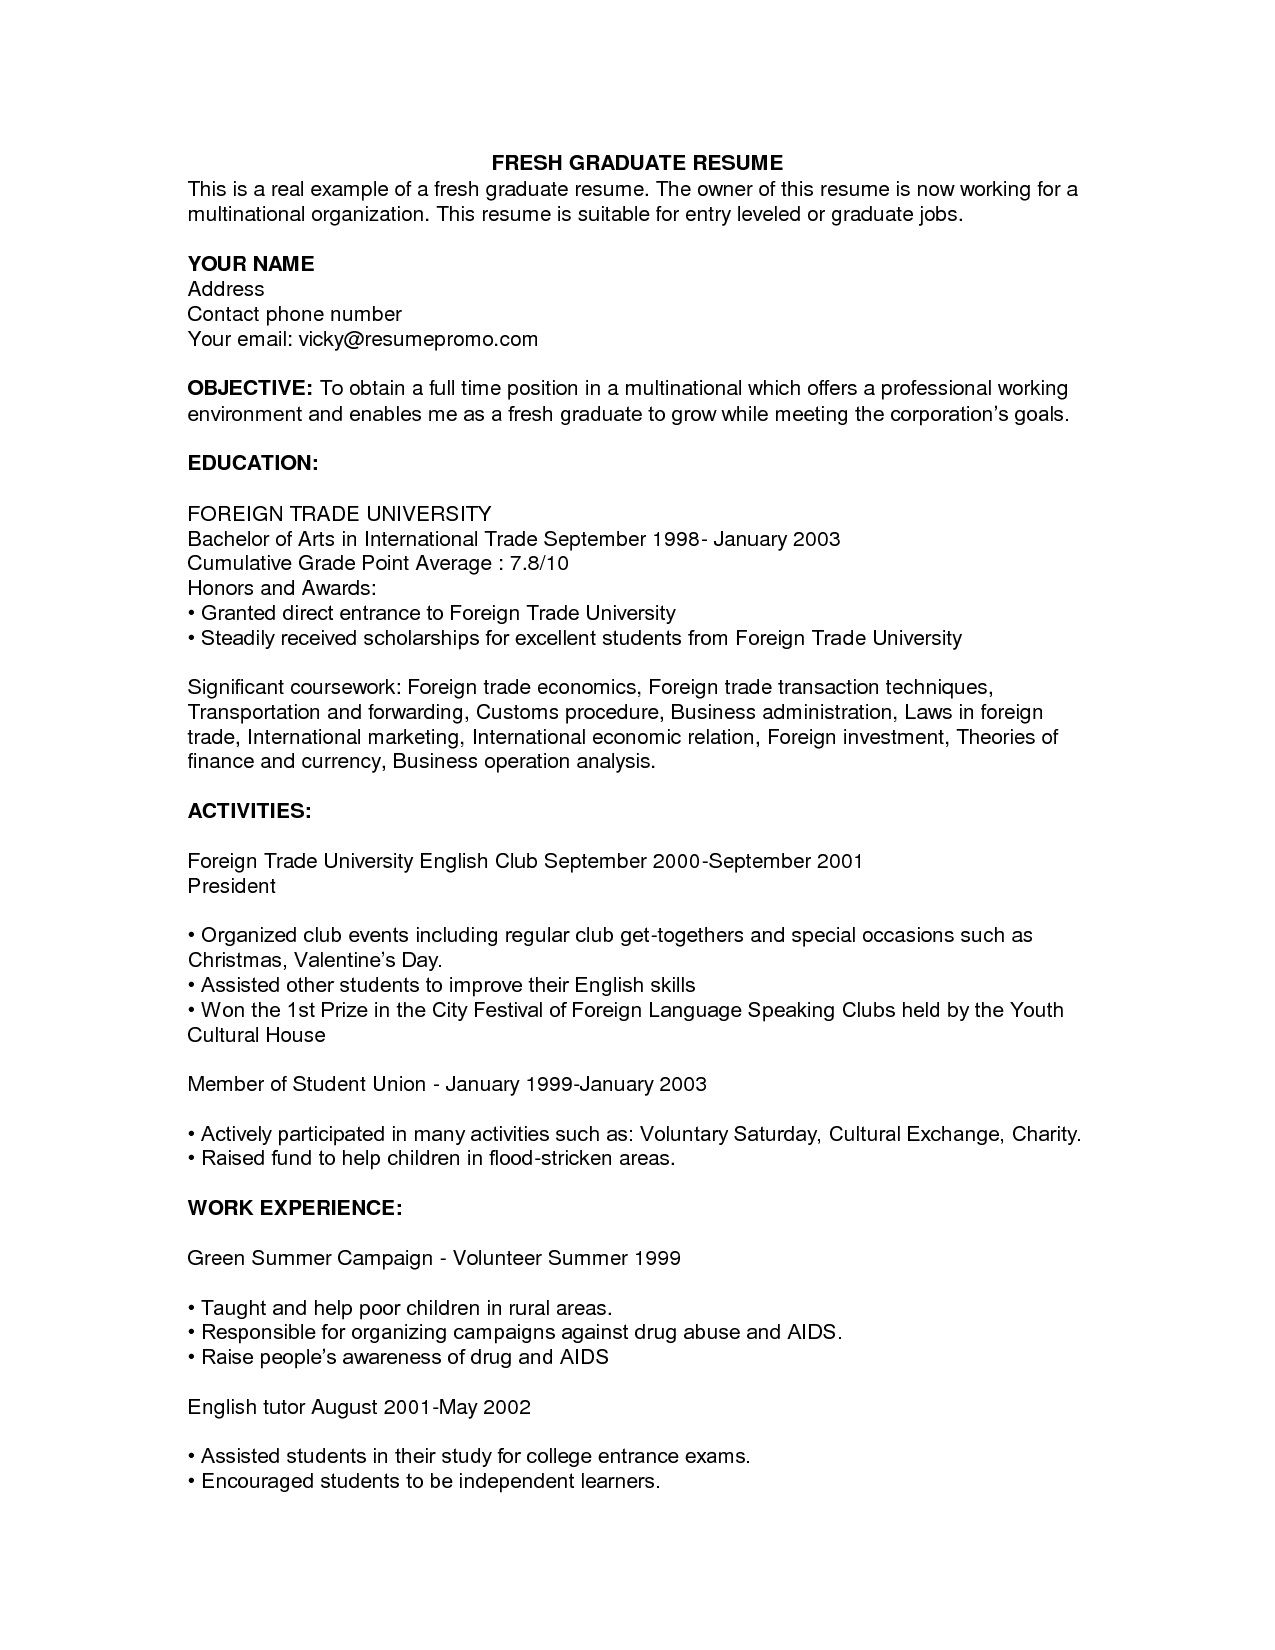 Example Resume For Fresh Graduate